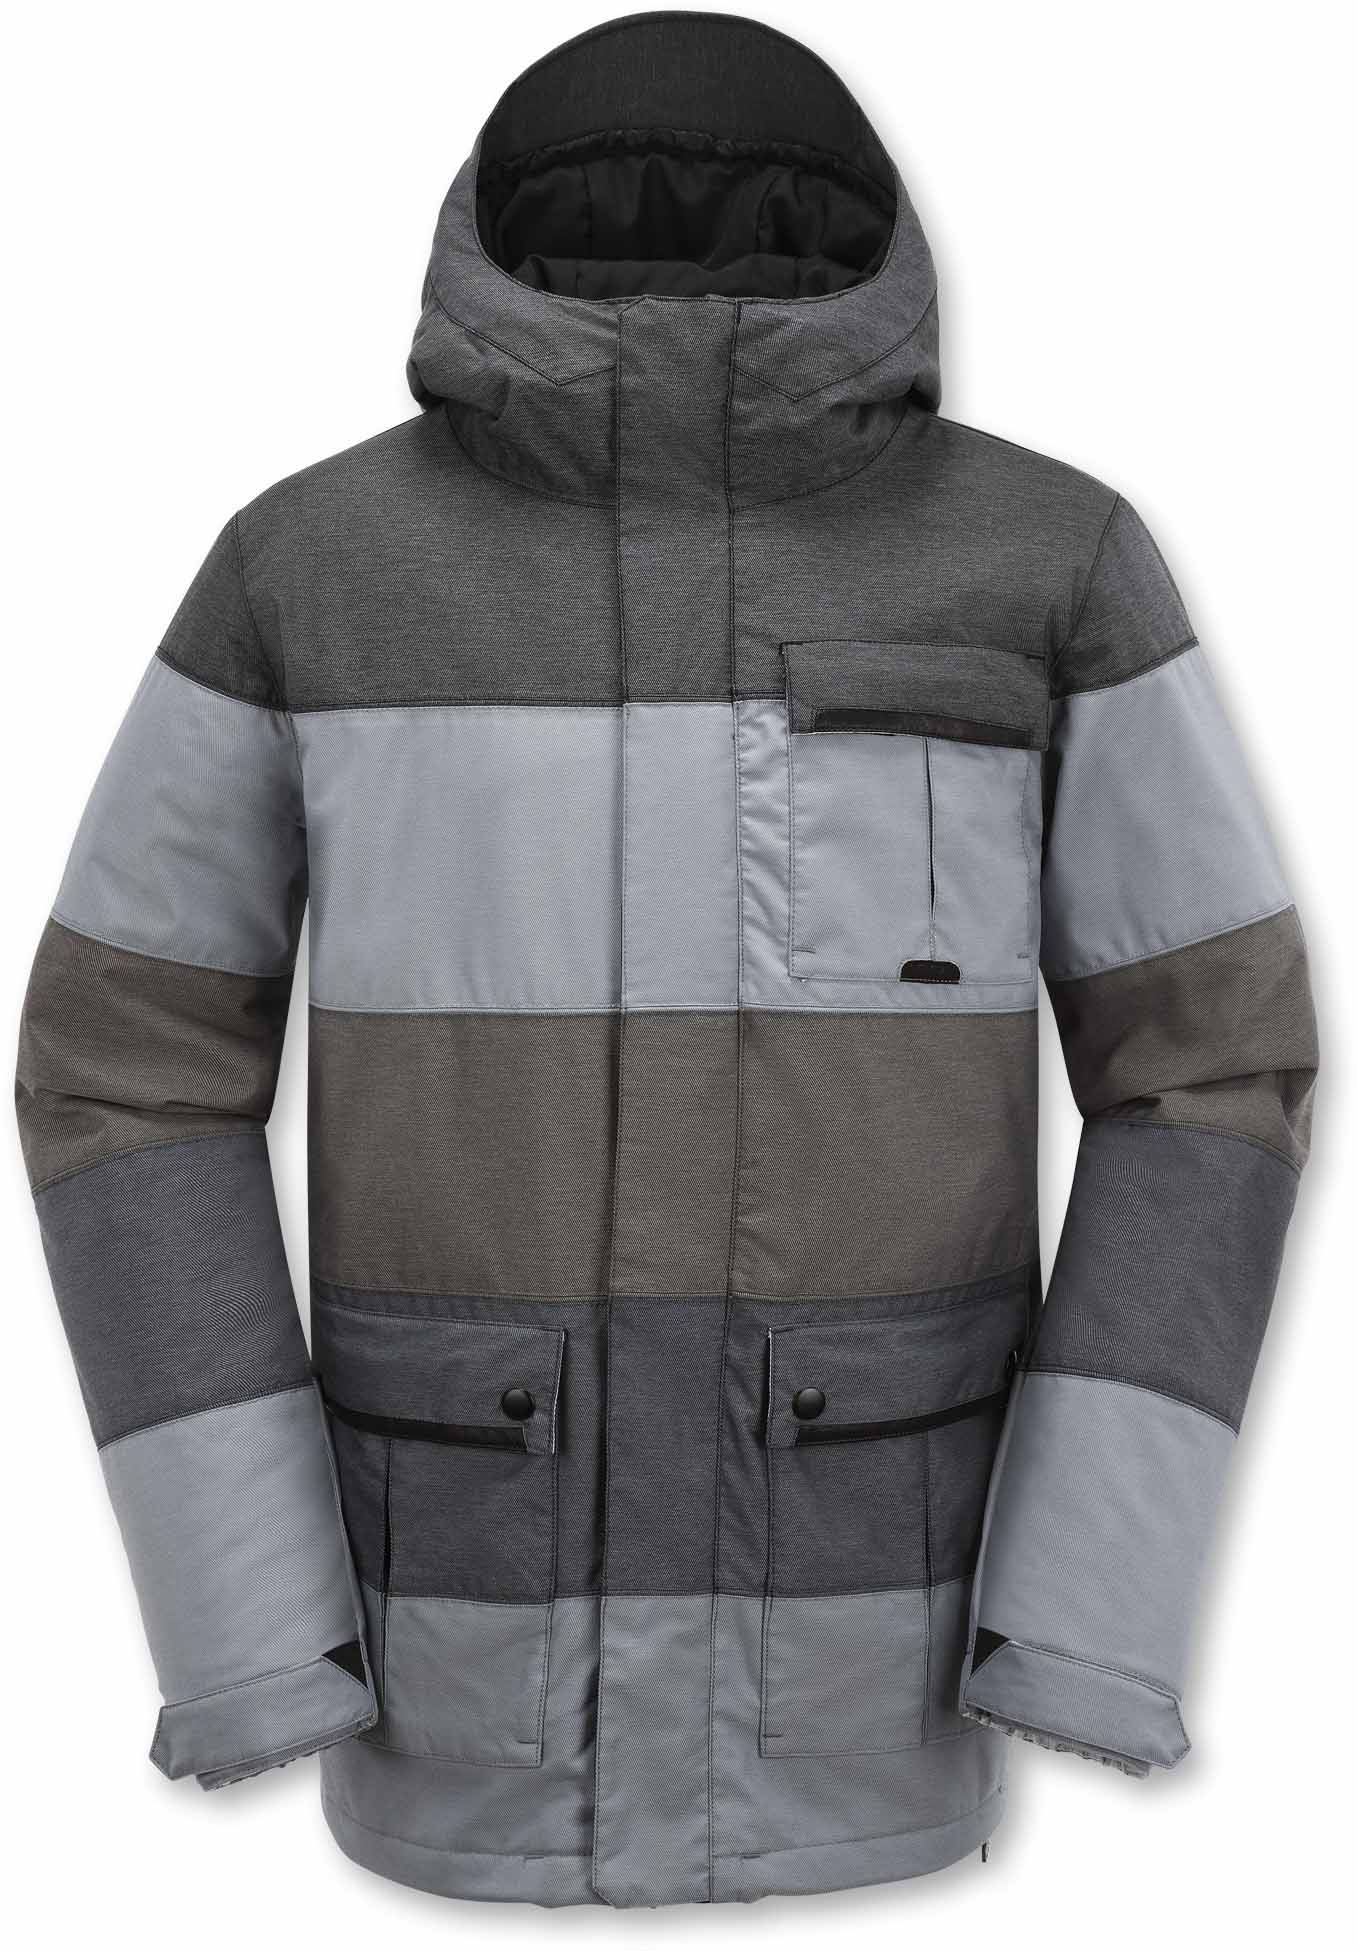 image volcom-captain-insulated-jacket-charcoal-jpg